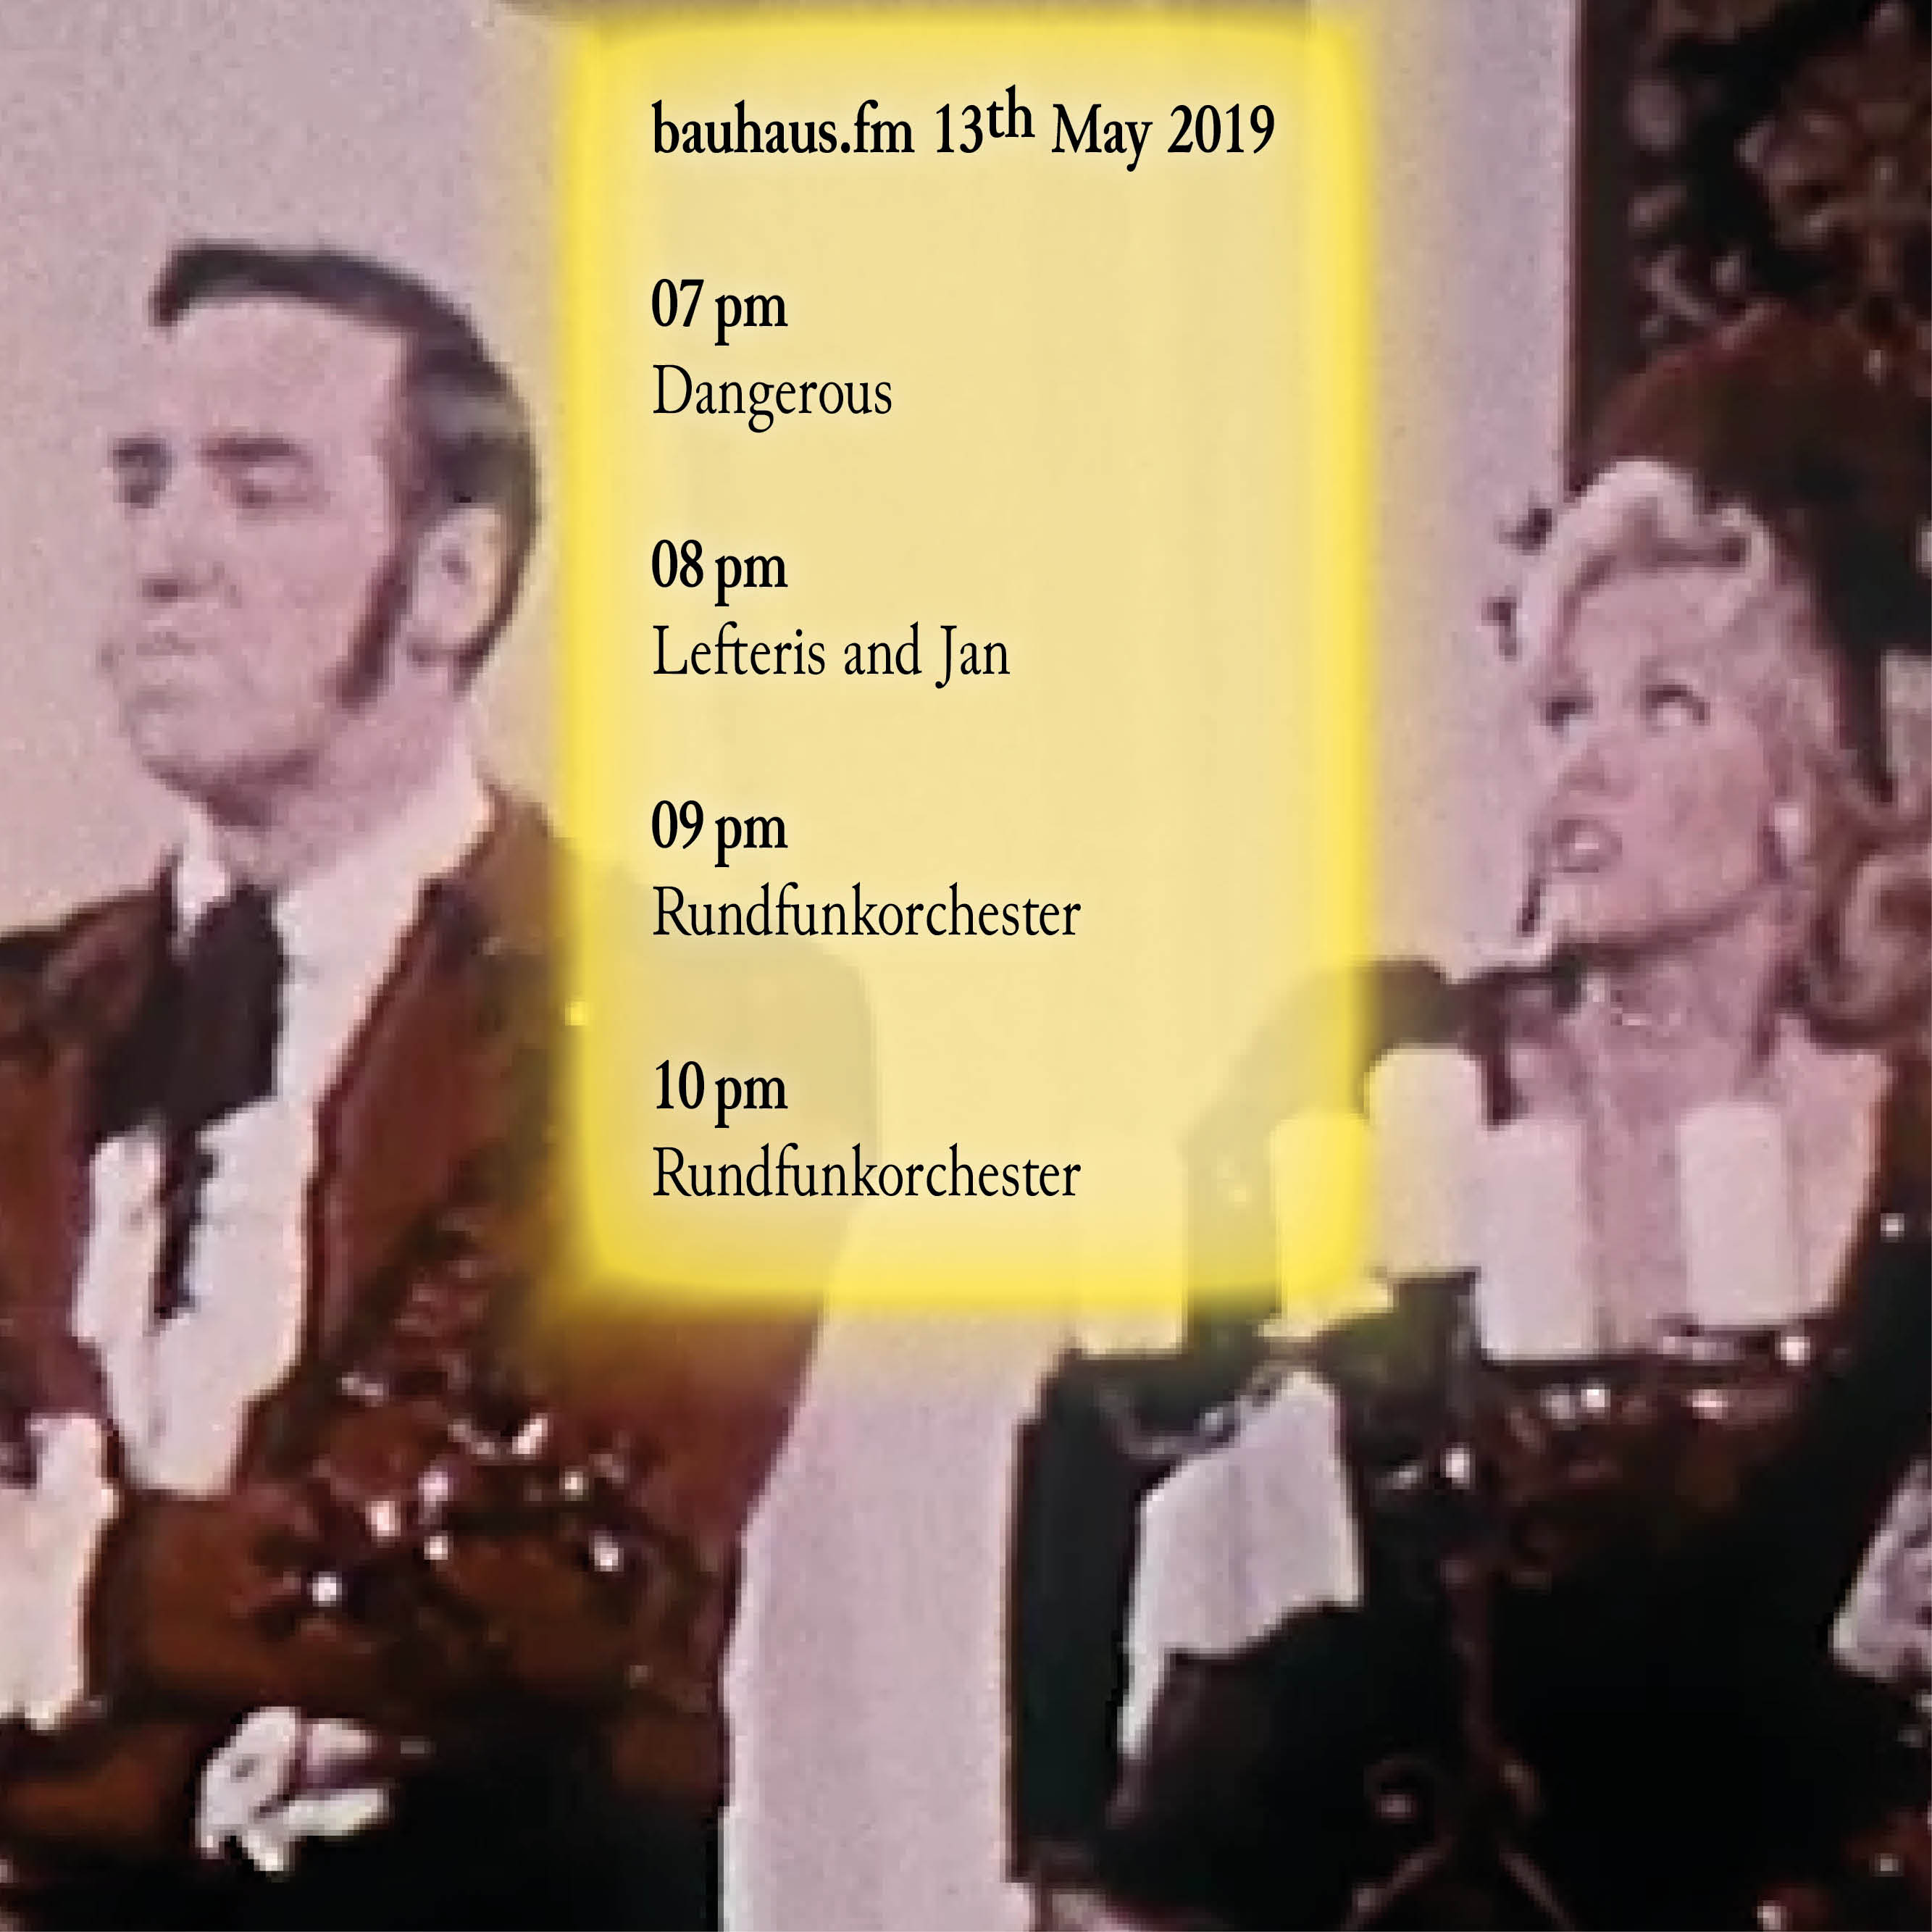 bauhaus.fm schedule for 13th May 2019.